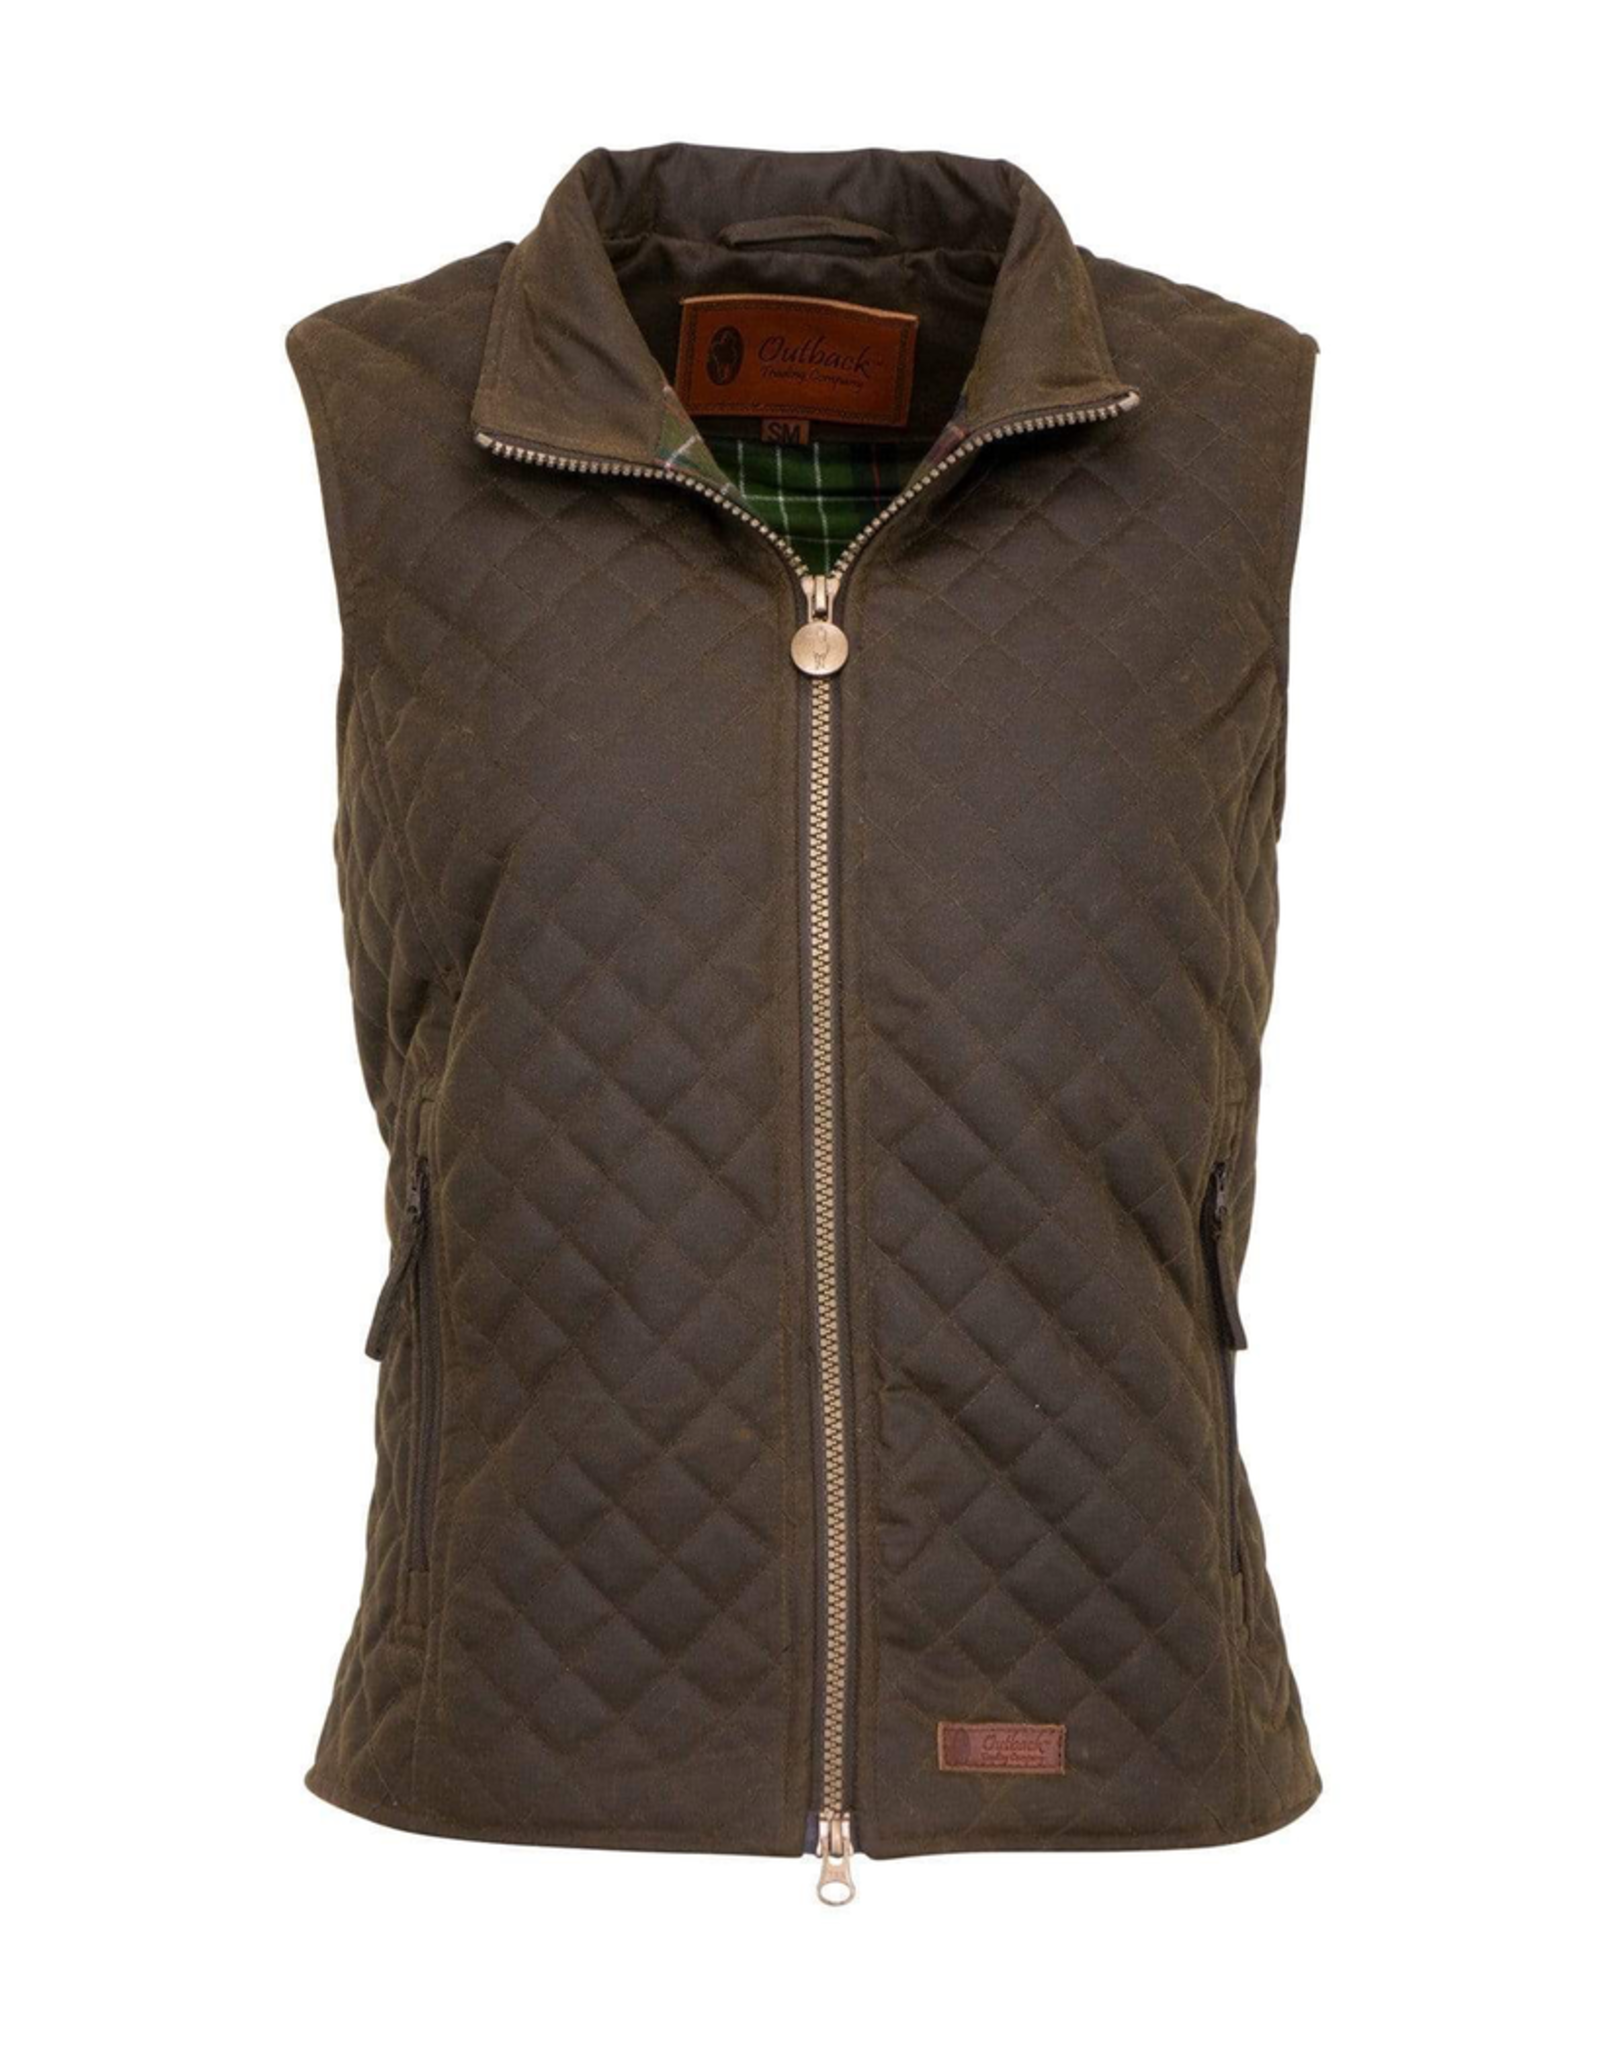 Outerwear OUTBACK Ladies Quilted Vest 2177